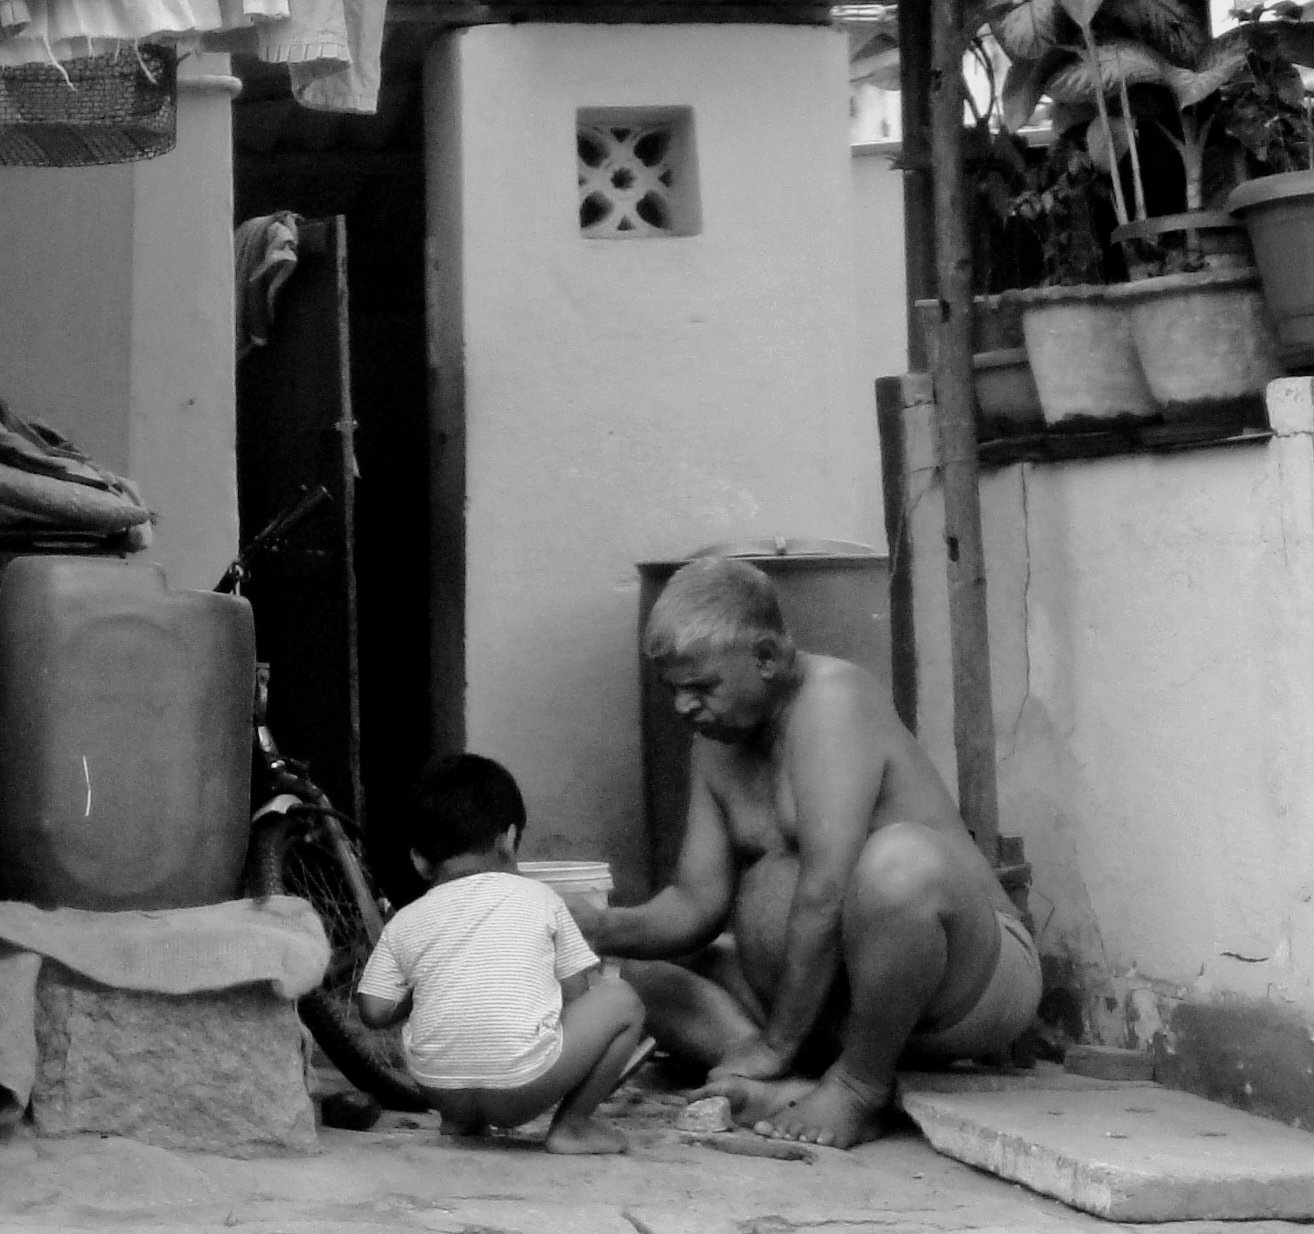 I was on My way home and I looked at this old man with his grandson, it was a priceless moment NOT to be missed at any cost, in this digital age almost everyone is becoming a slave of DIGI products in such a time ,this was truly a welcome site.